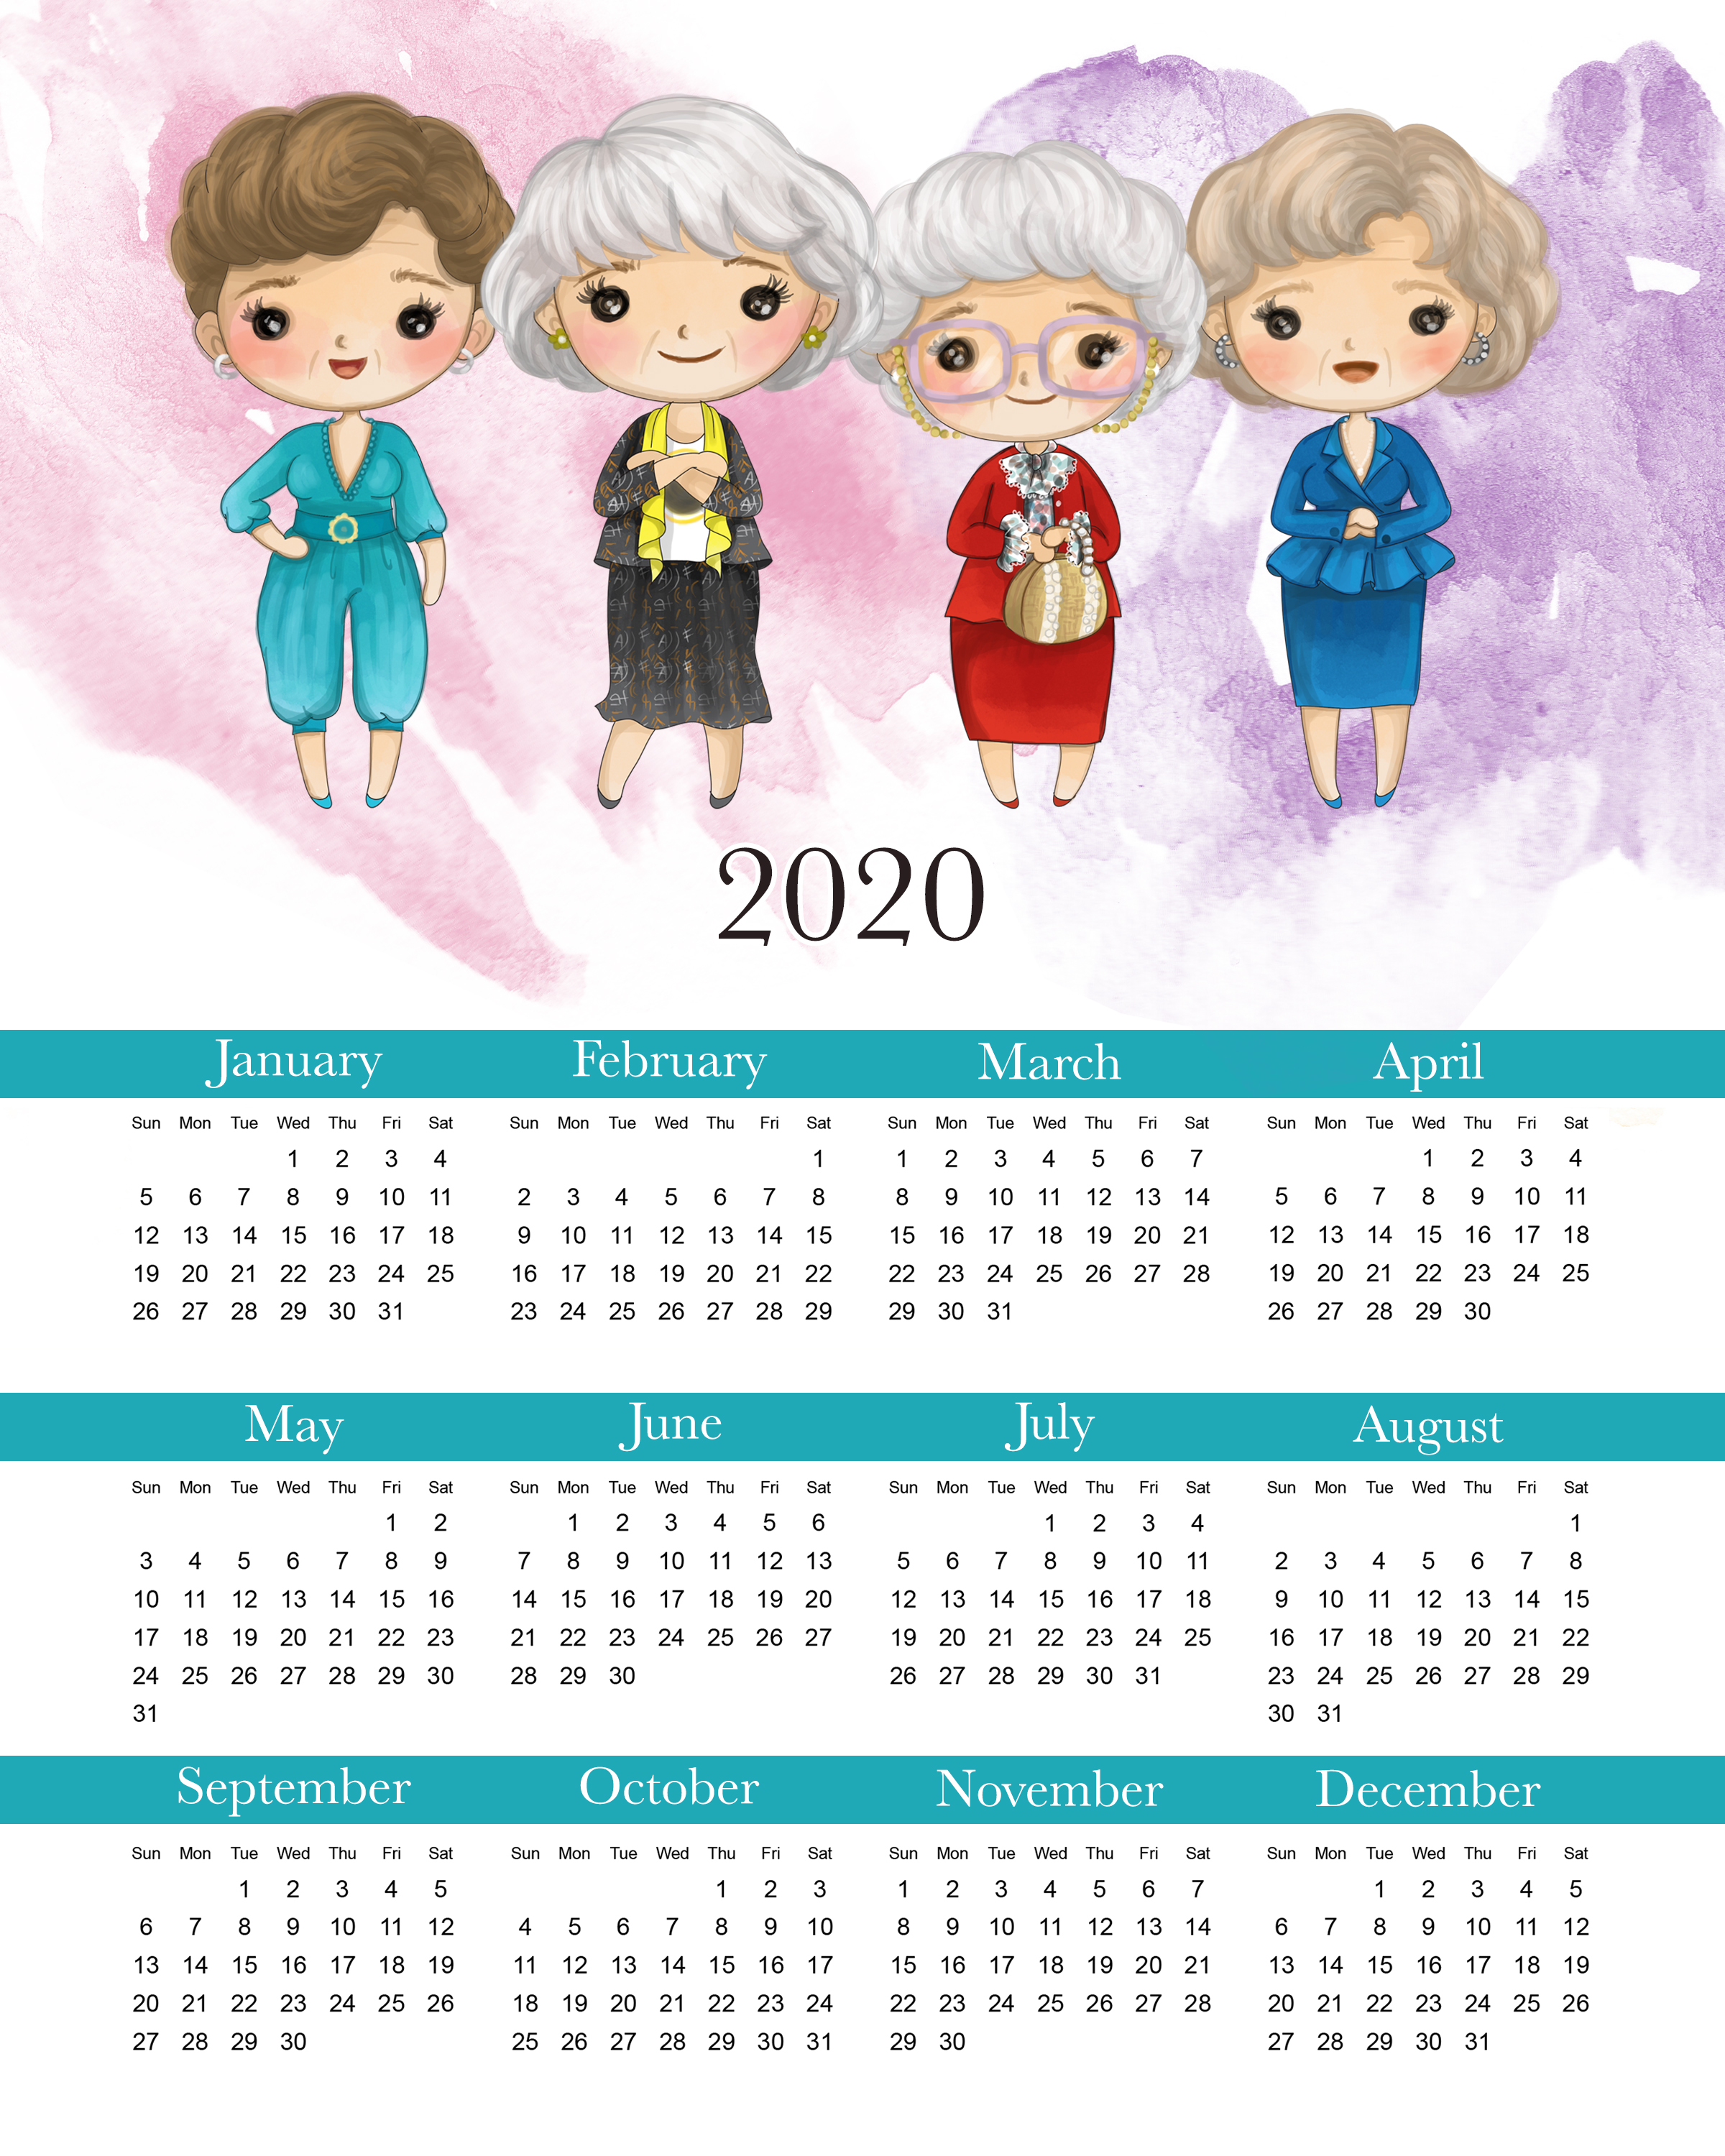 Get a jump start on the New Year with this Fun Free Printable 2020 Golden Girls Calendar. No matter what your age these ladies will bring a smile to your face!